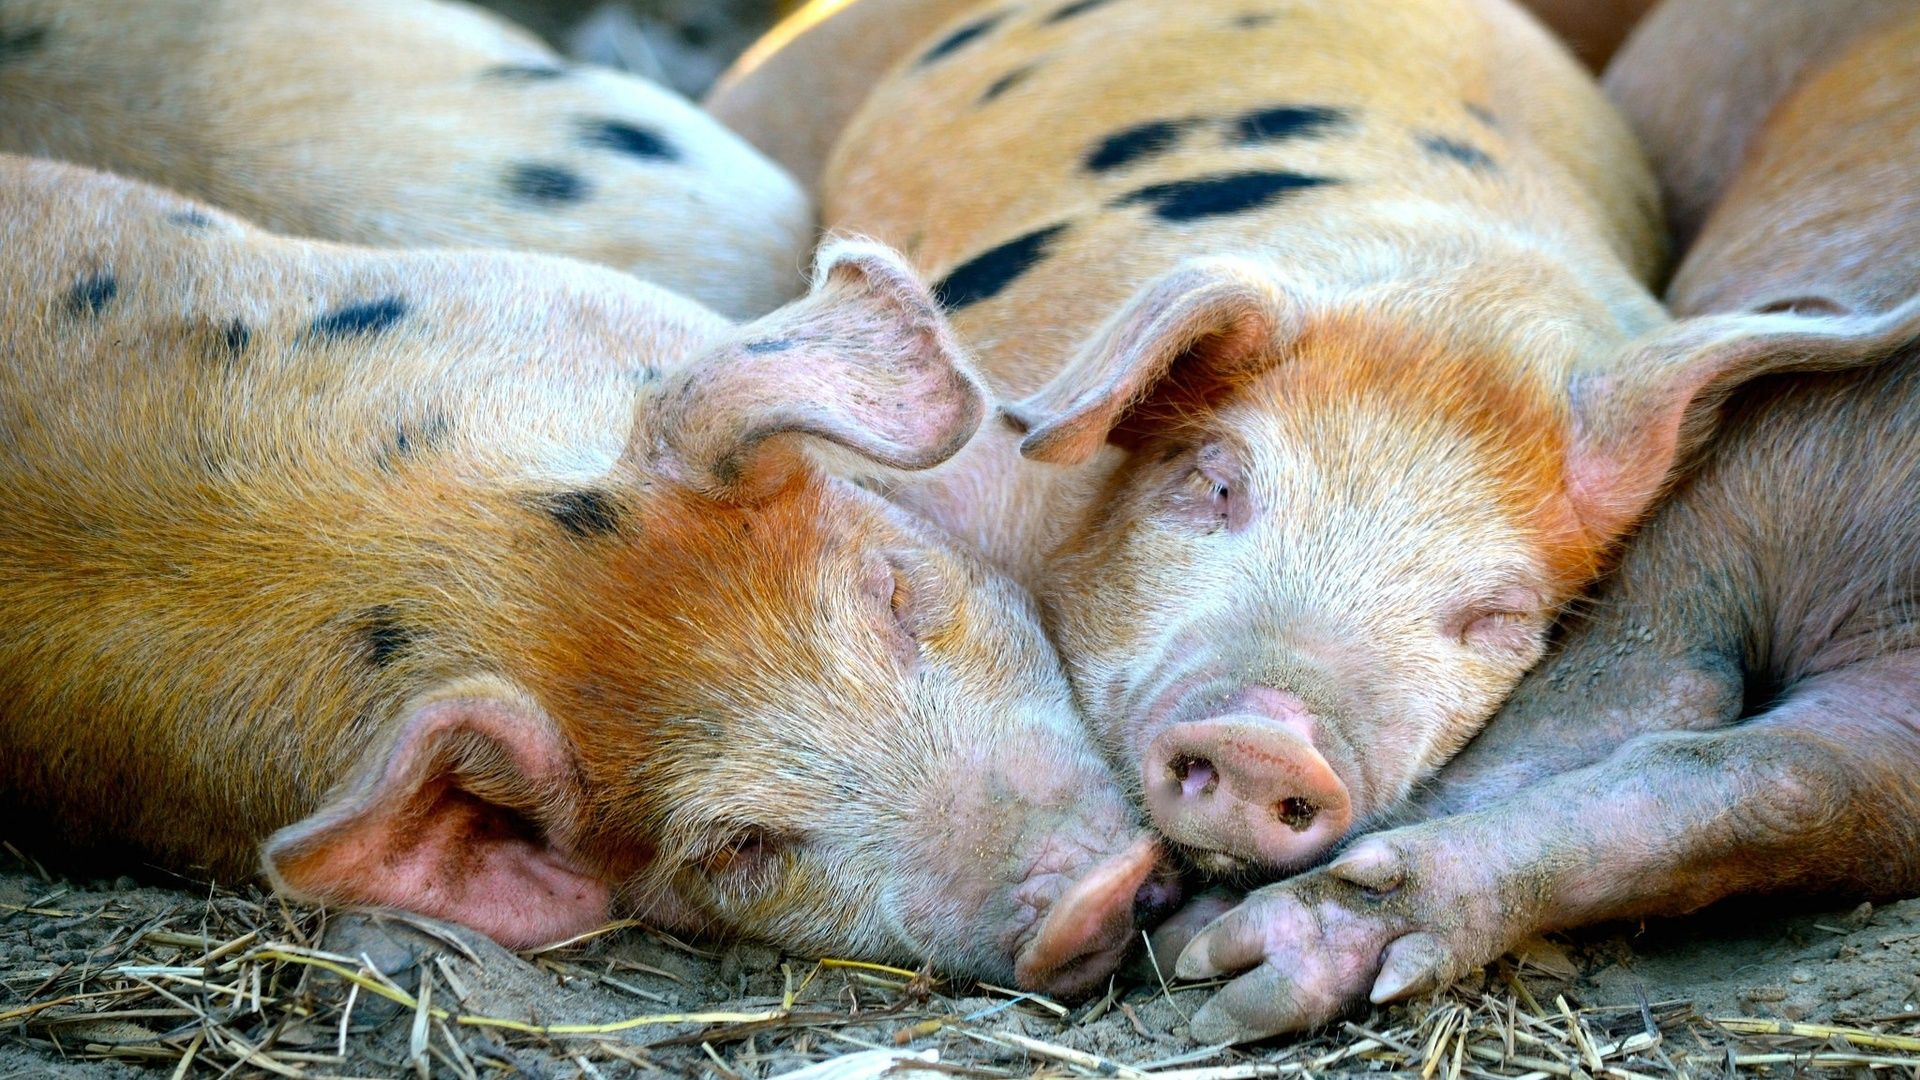 Pictures Of Pigs And Piglets